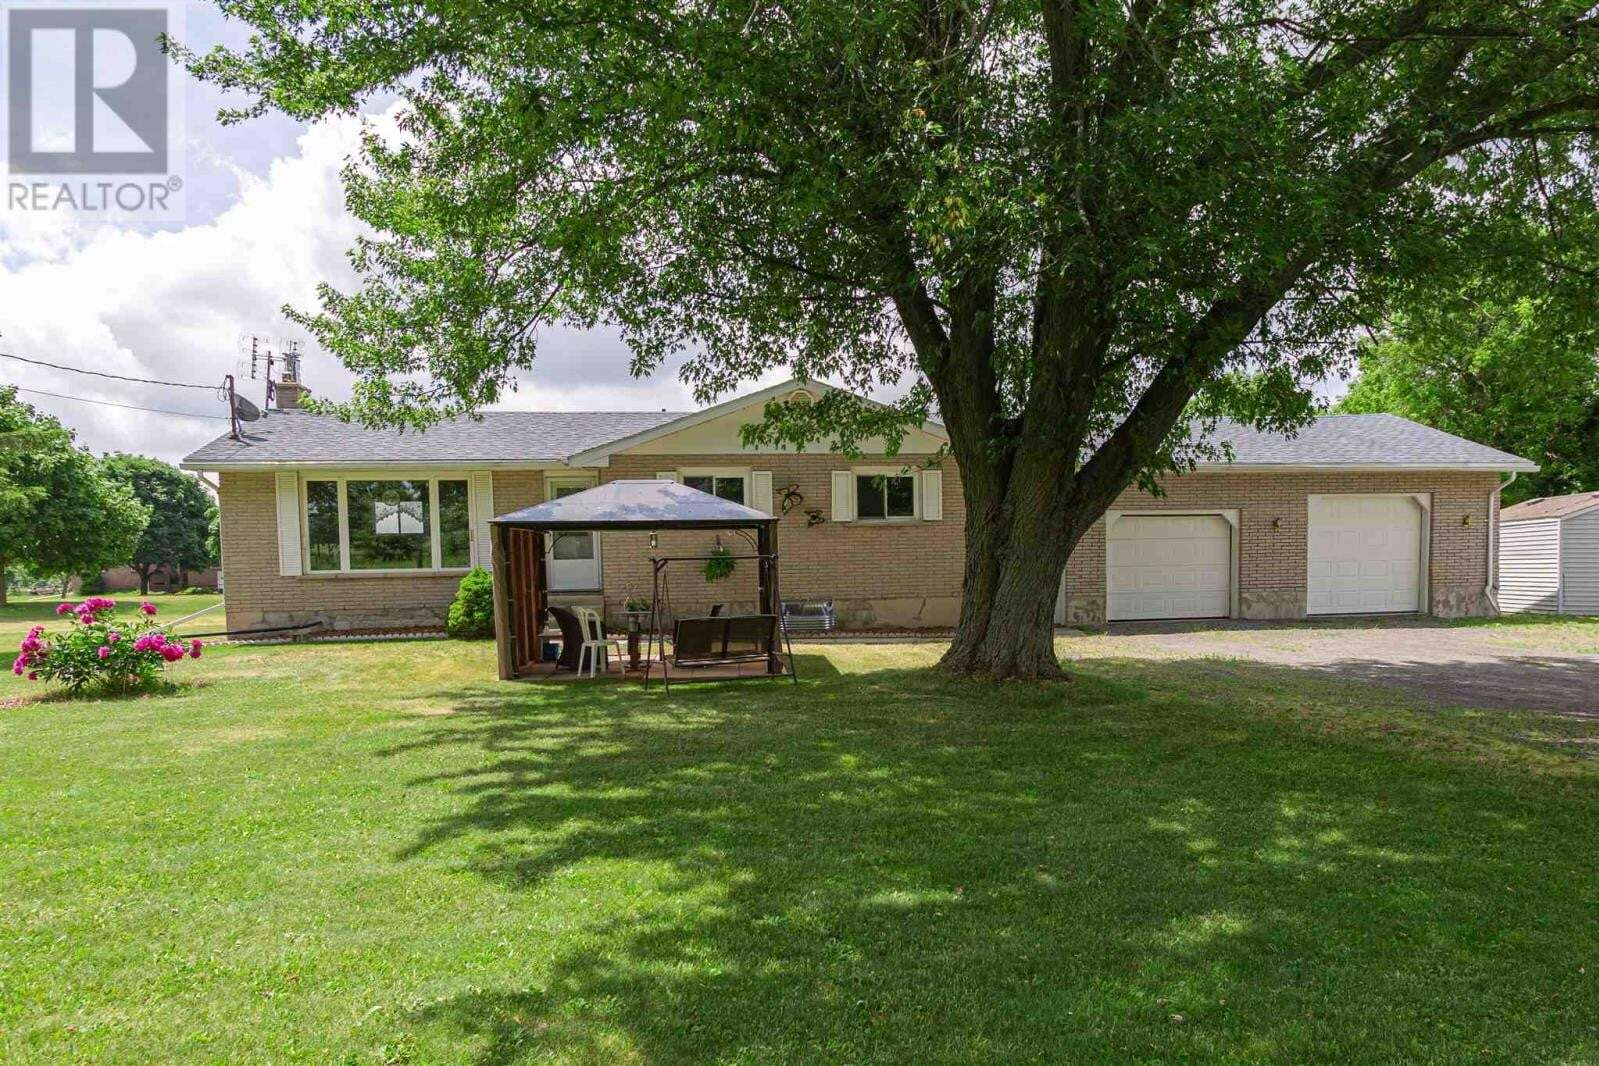 House for sale at 3901 Petworth Rd South Frontenac Ontario - MLS: K20003478